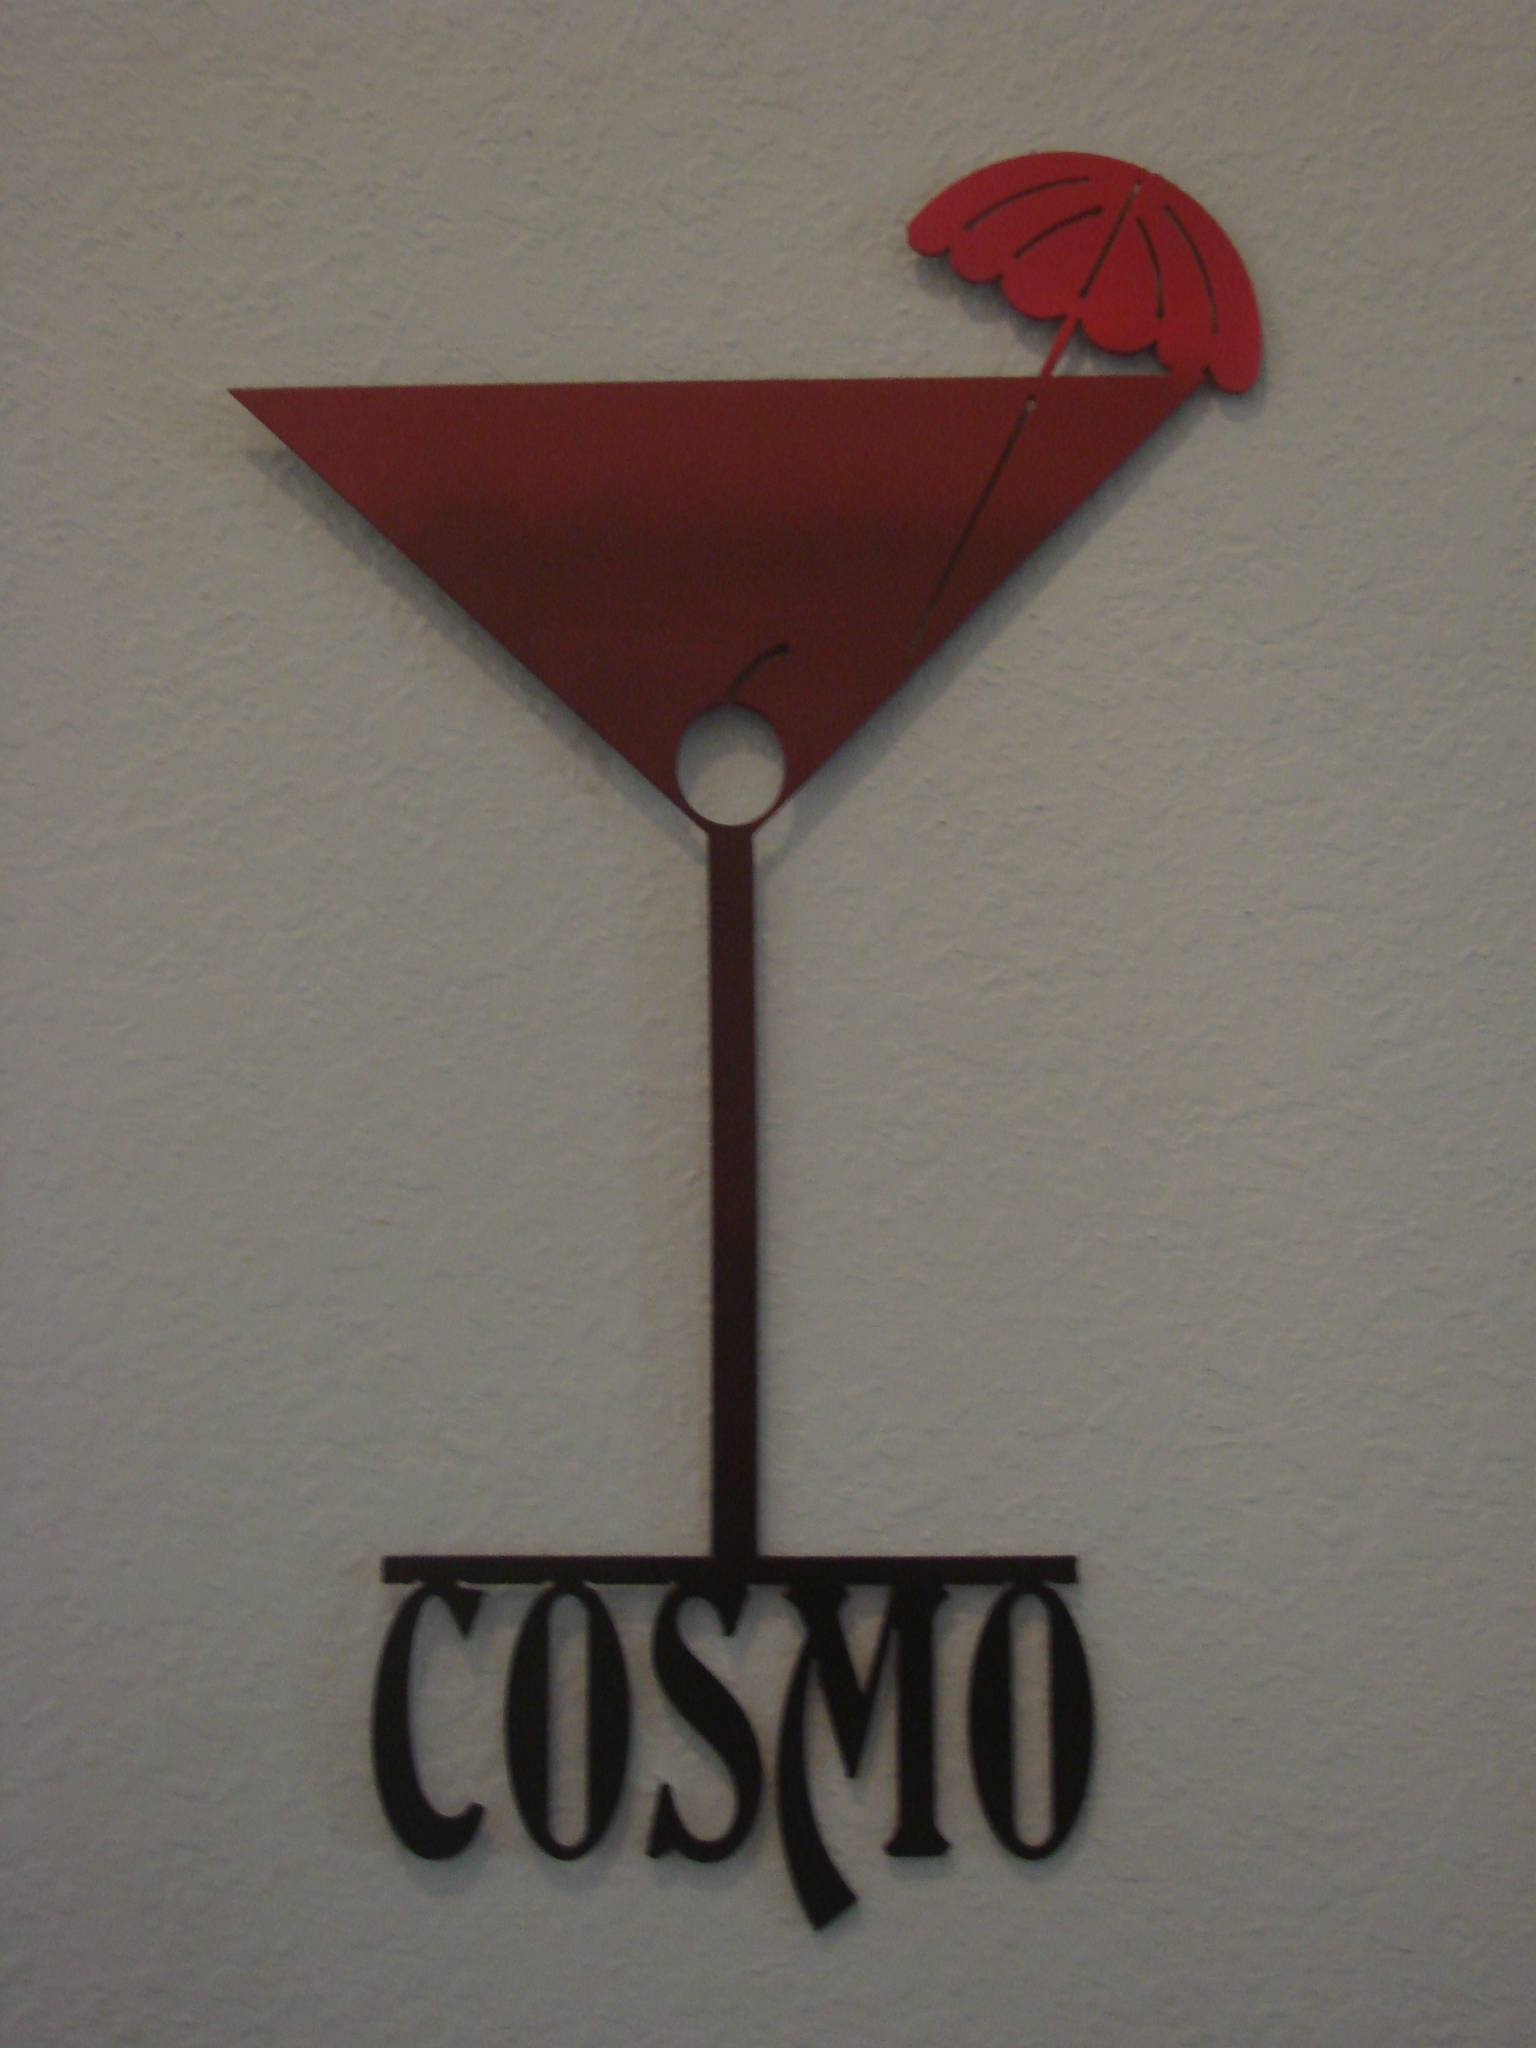 16 Gauge Ombre Red To Black Cosmopolitan Martini Glass Metal Wall Throughout Most Recently Released Martini Glass Wall Art (View 5 of 30)